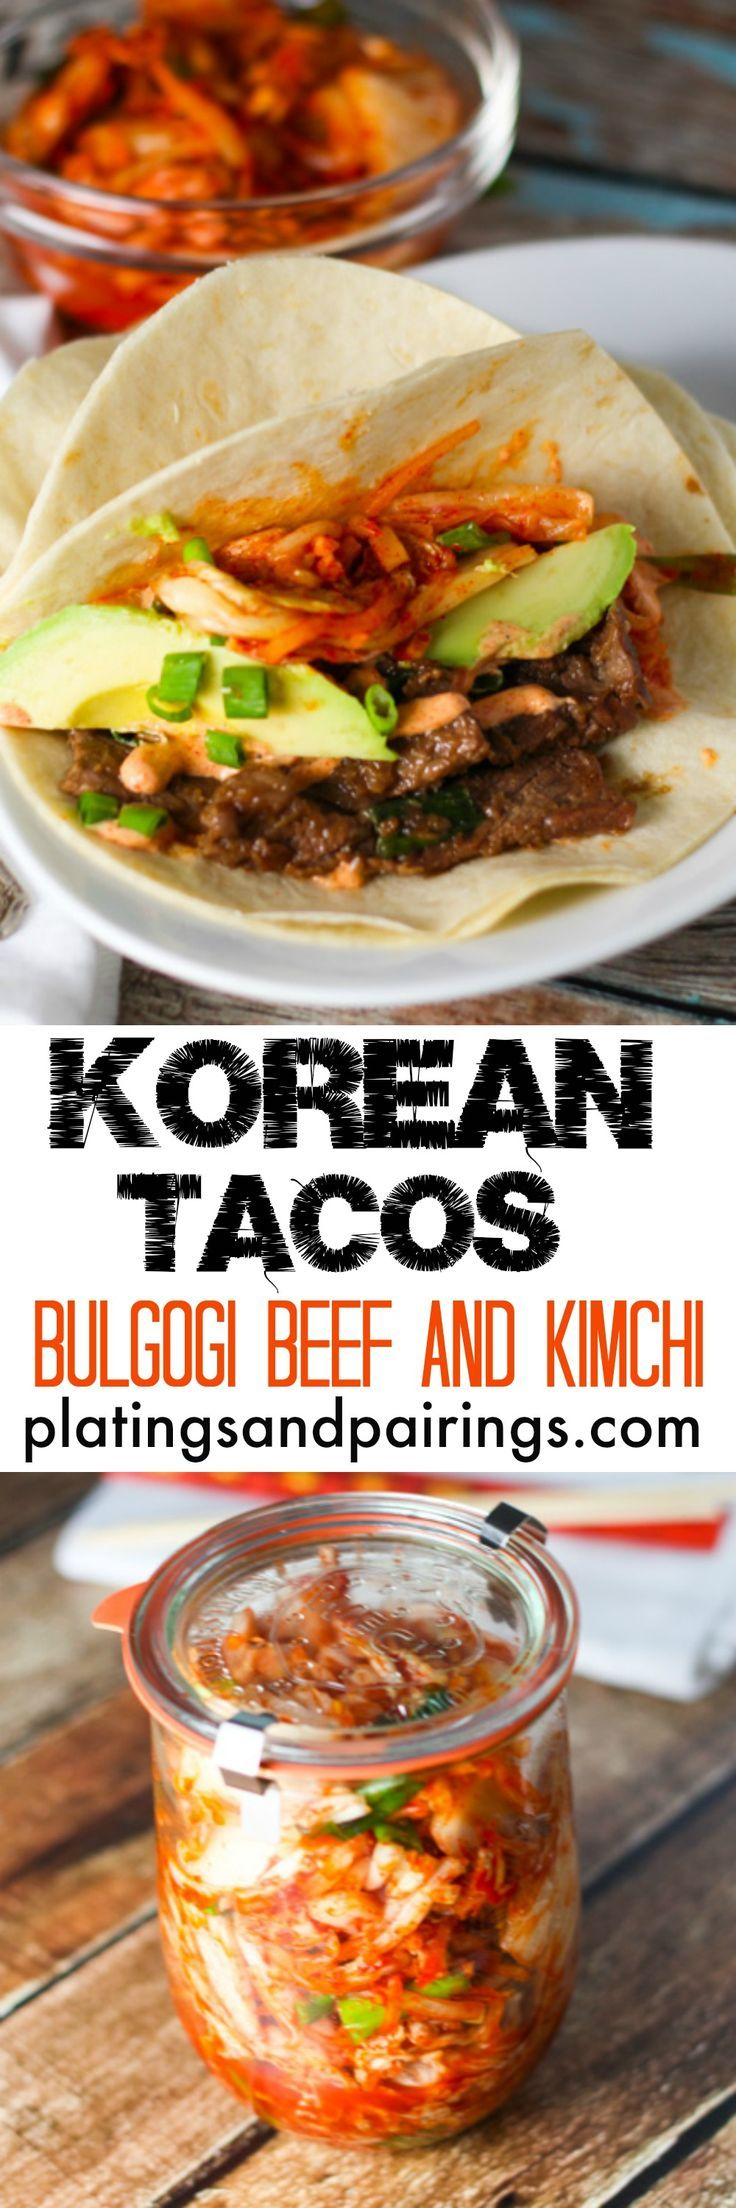 Korean Tacos Recipe | Asian Cooking | Such AMAZING flavors in these tacos! No wonder they're sweeping the West Coast!